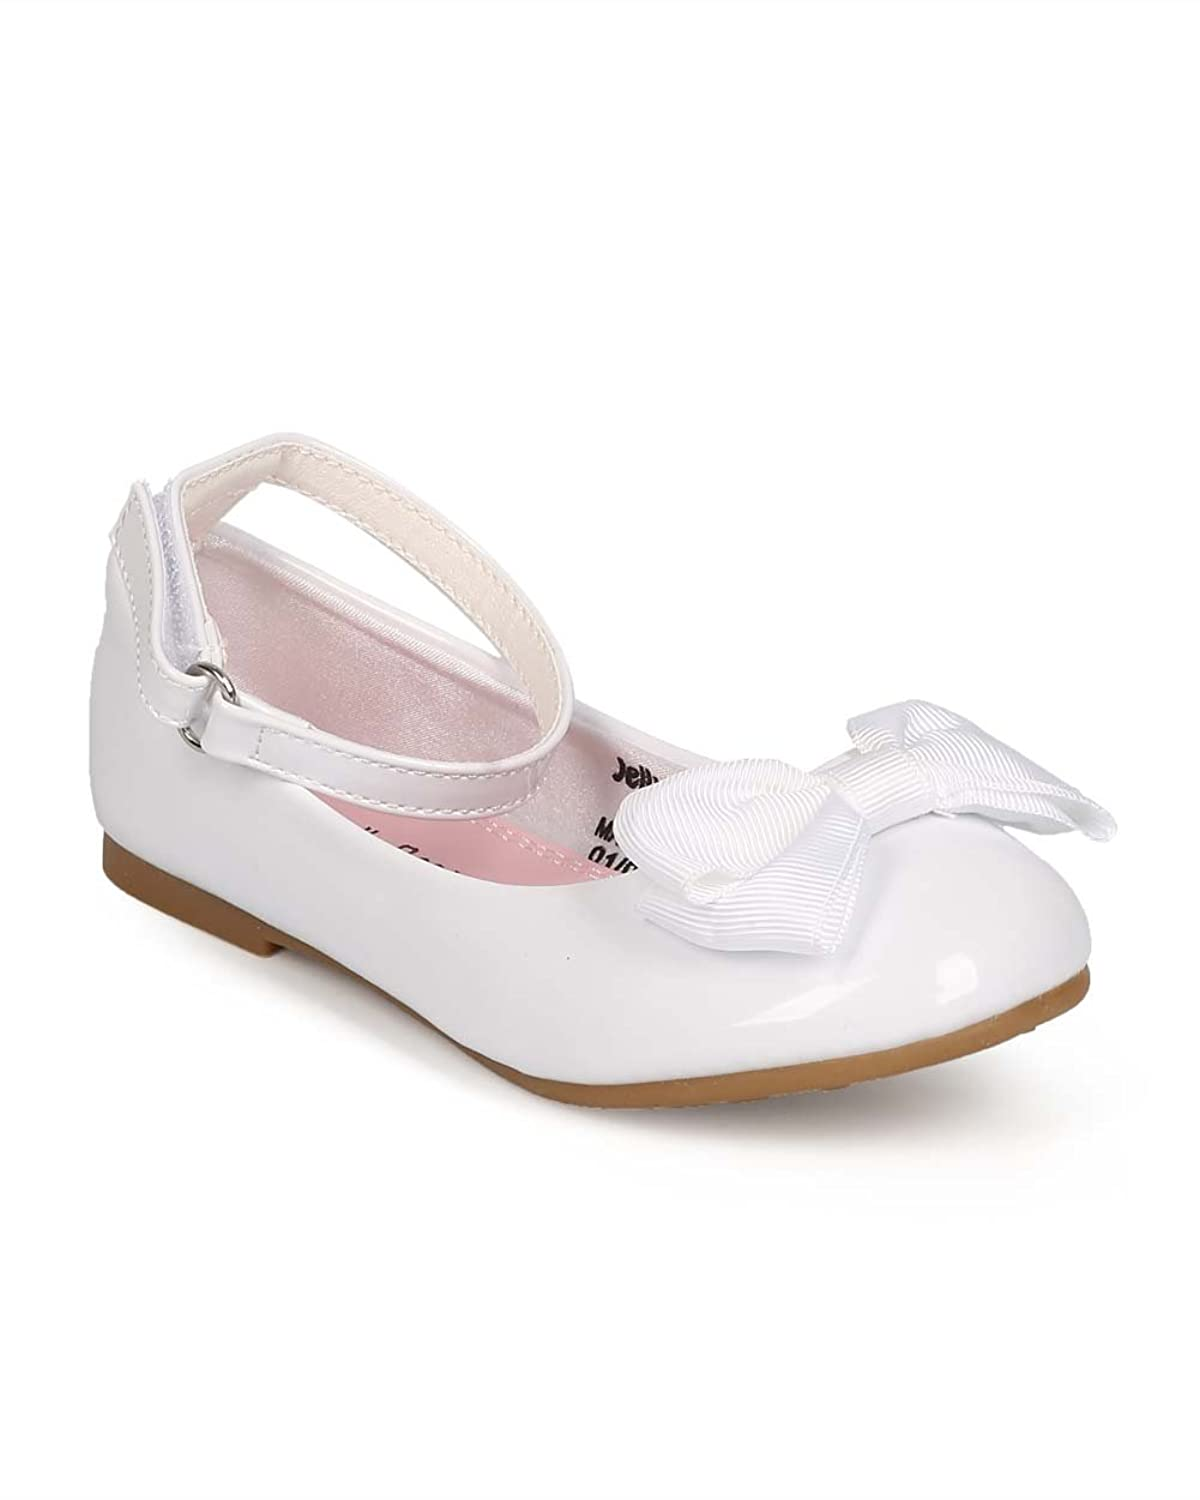 bb61c1ec1c9 Alrisco EC10 Girl Patent Round Toe Ankle Strap Bow Ballet Flat (Toddler) -  White